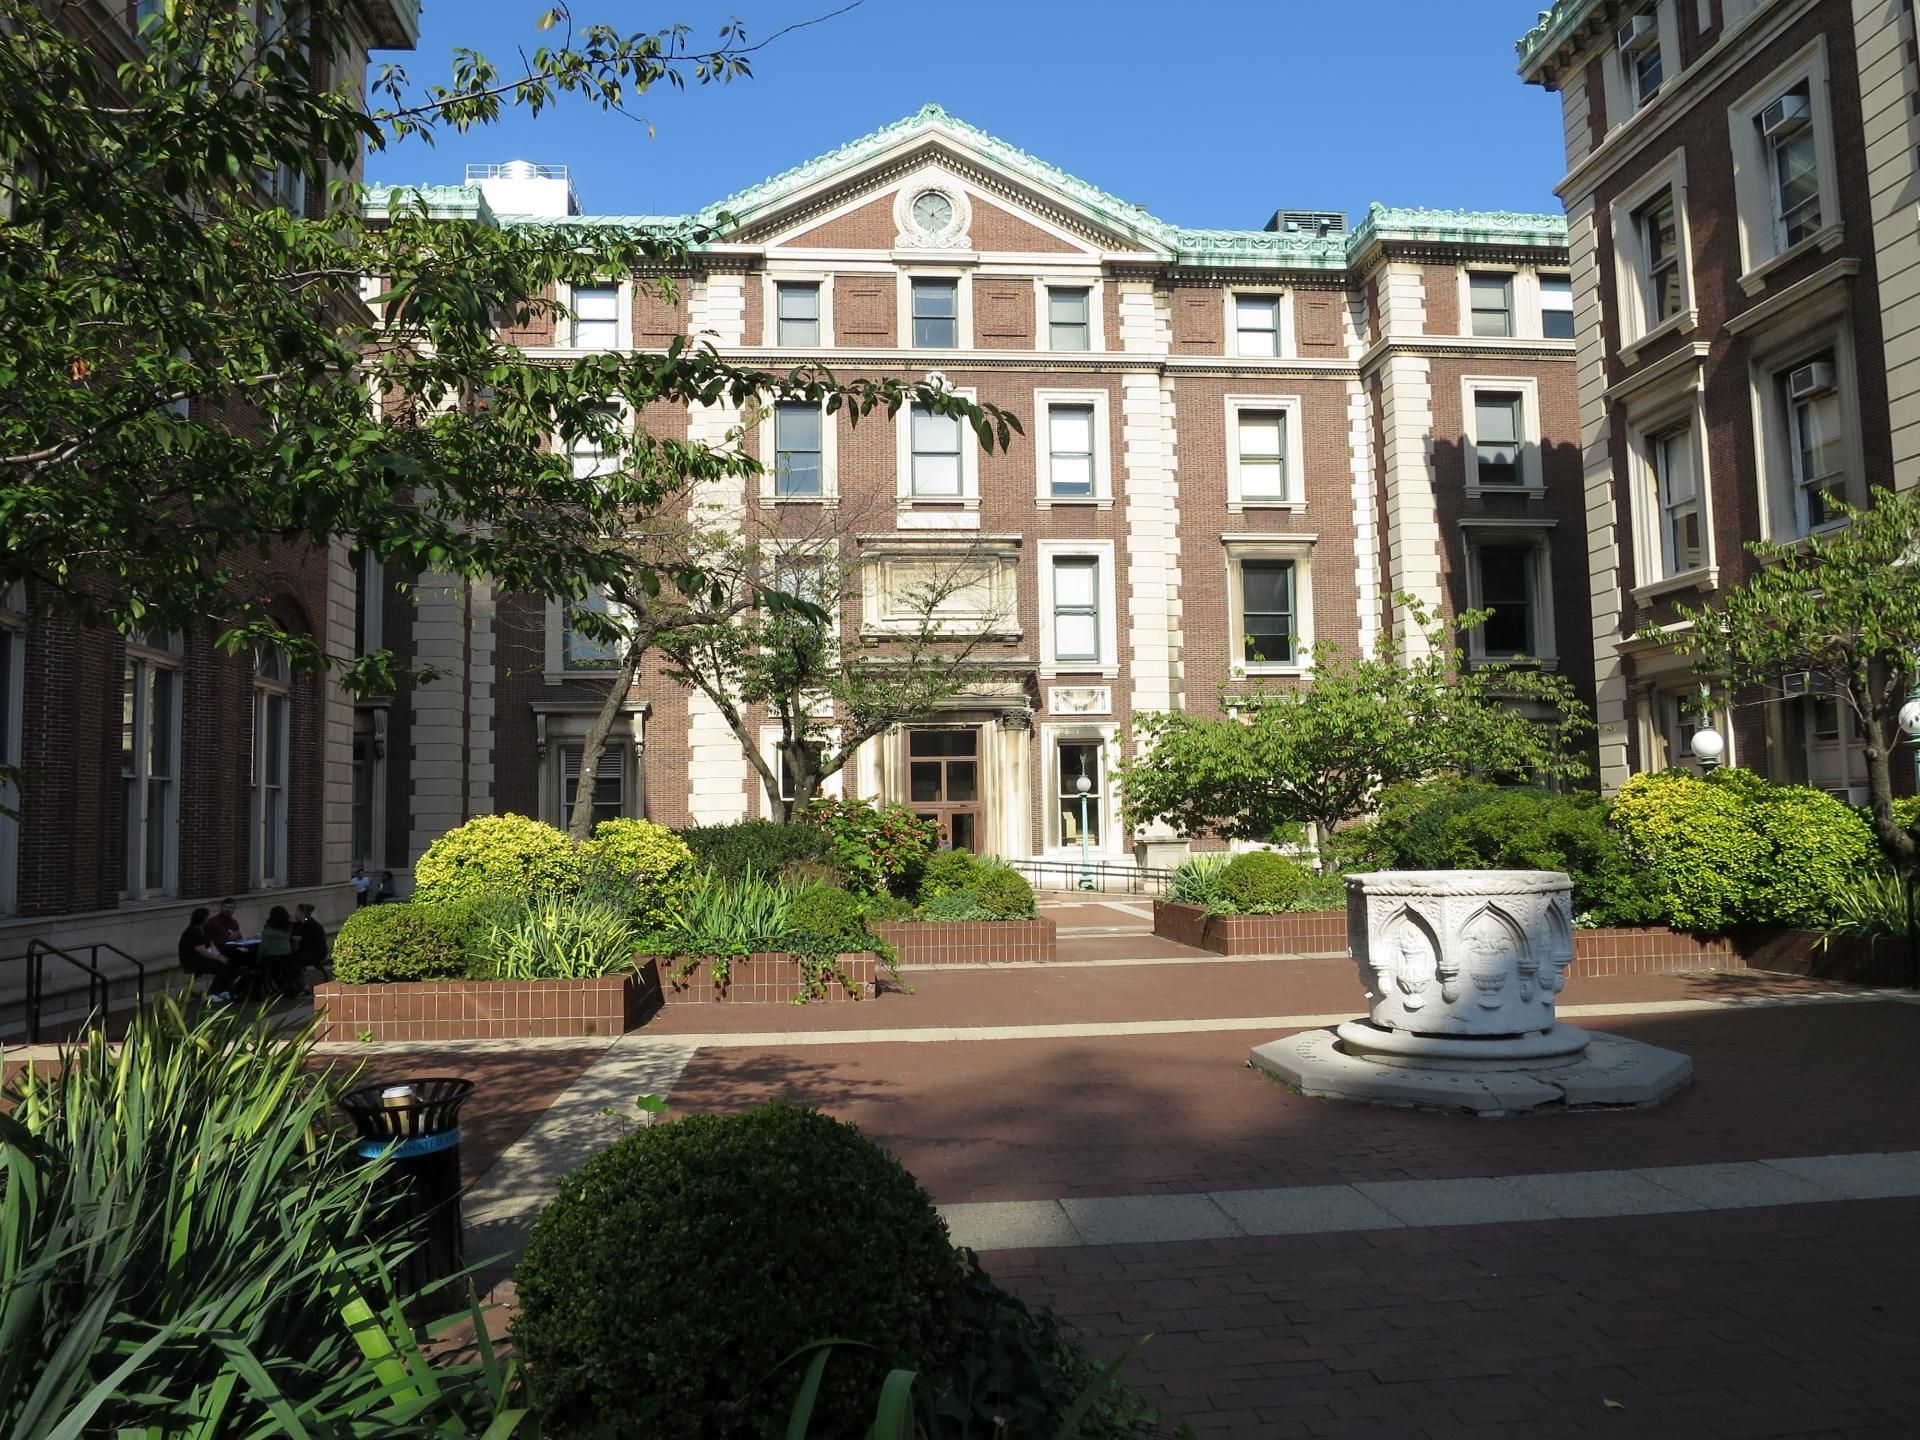 Schermerhorn Hall External View